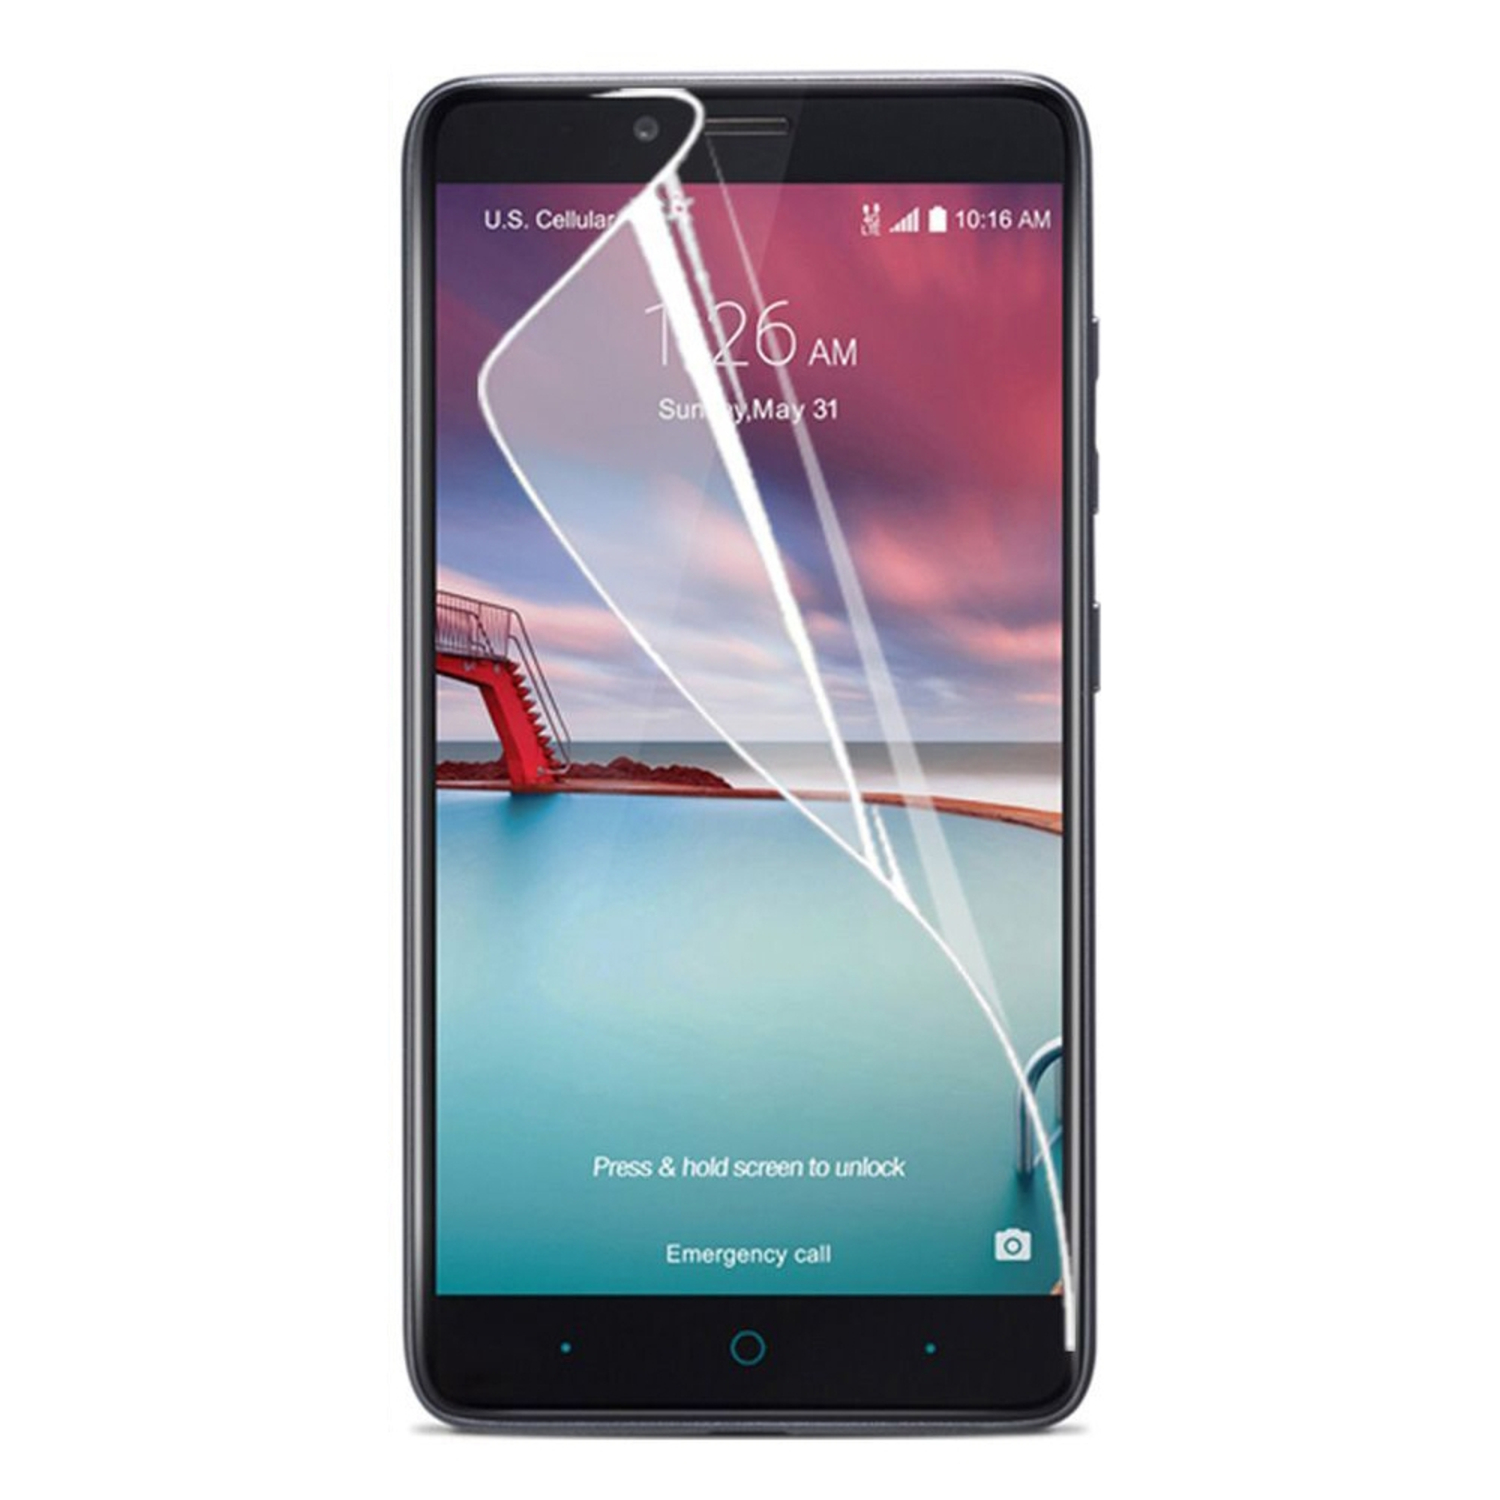 jeep 98, best screen protector for zte zmax pro users